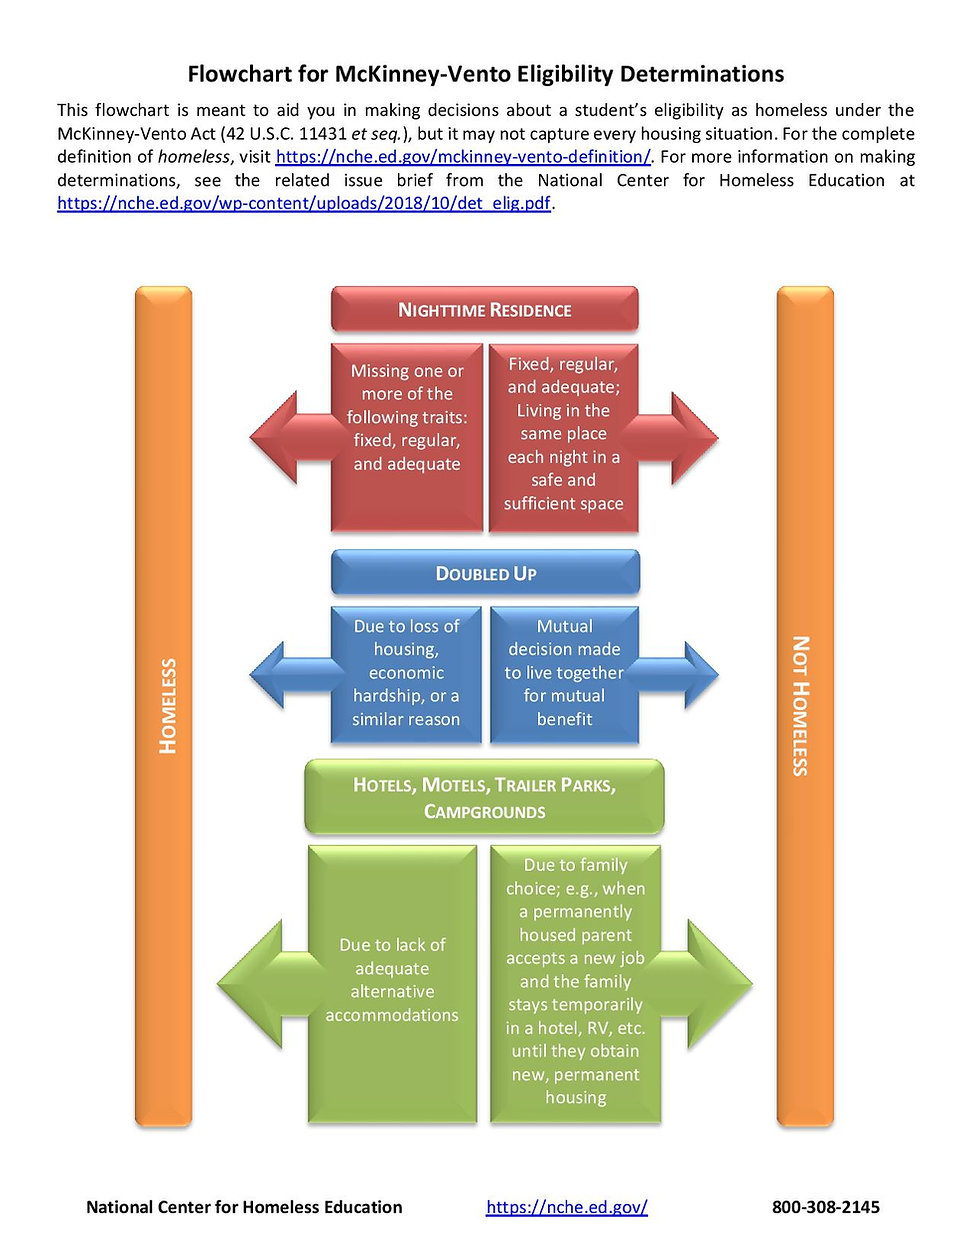 NCHE-Eligibility-Flowchart-page-001.jpg